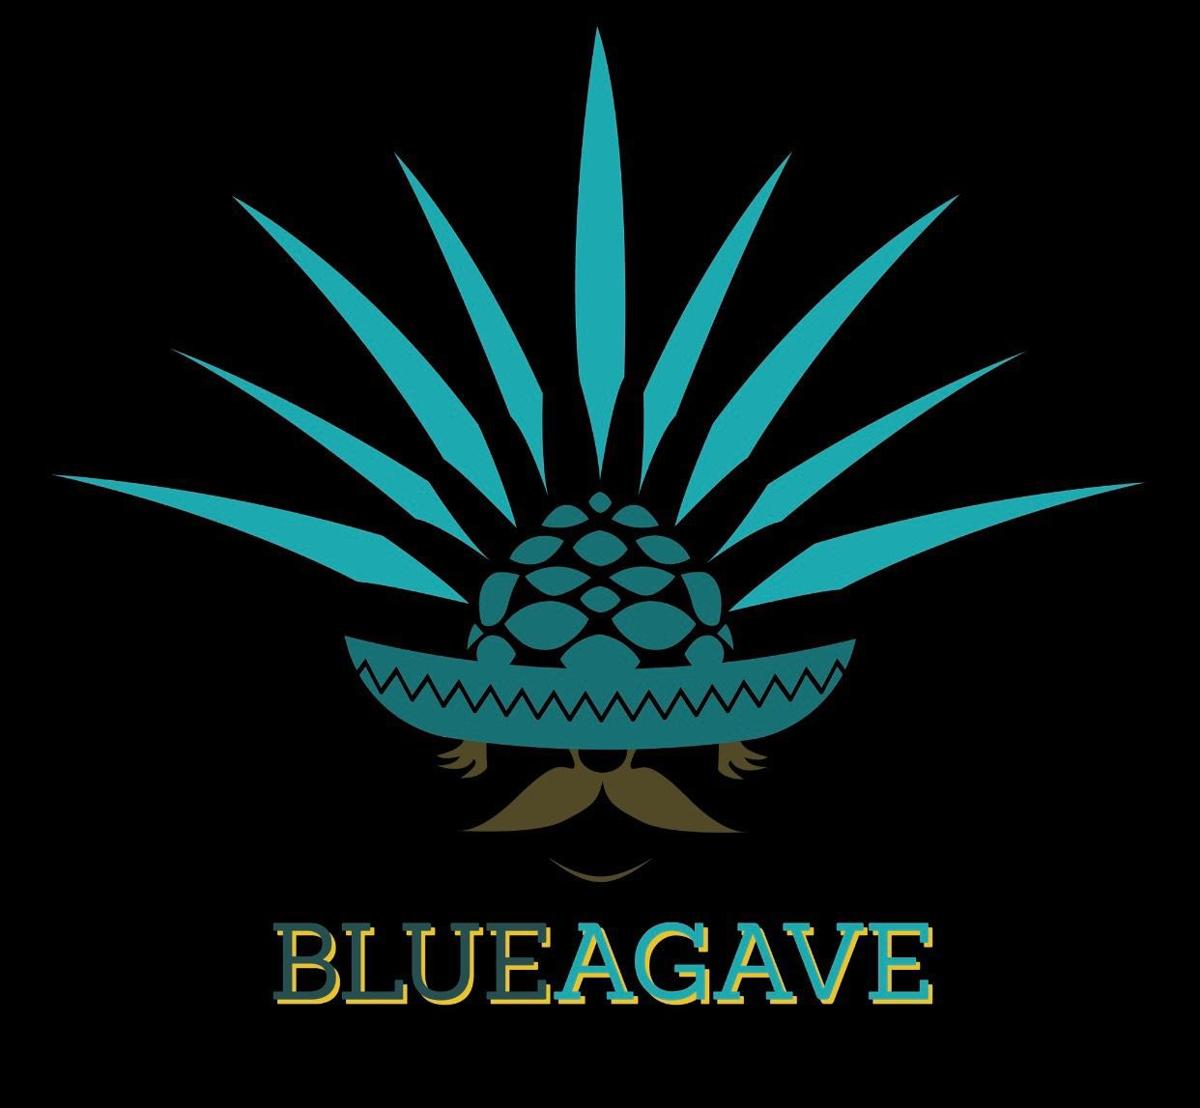 7e8d65be7c51 Blue Agave restaurant opening in old Bayou location Downtown ...